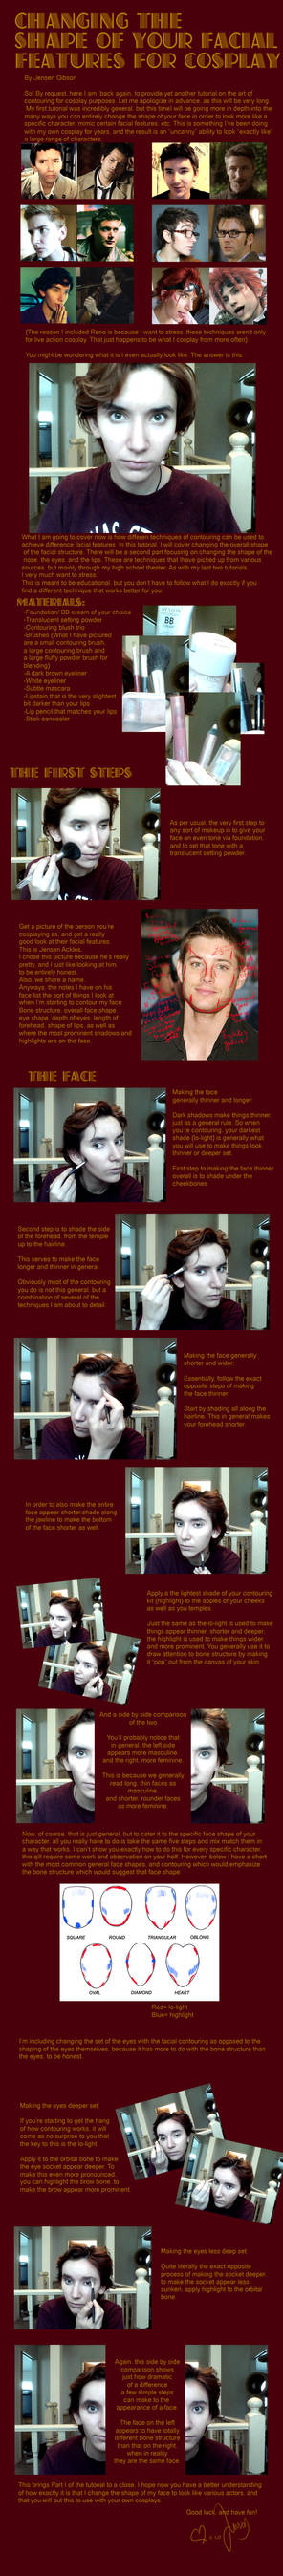 Changing the shape of your facial features, pt 1